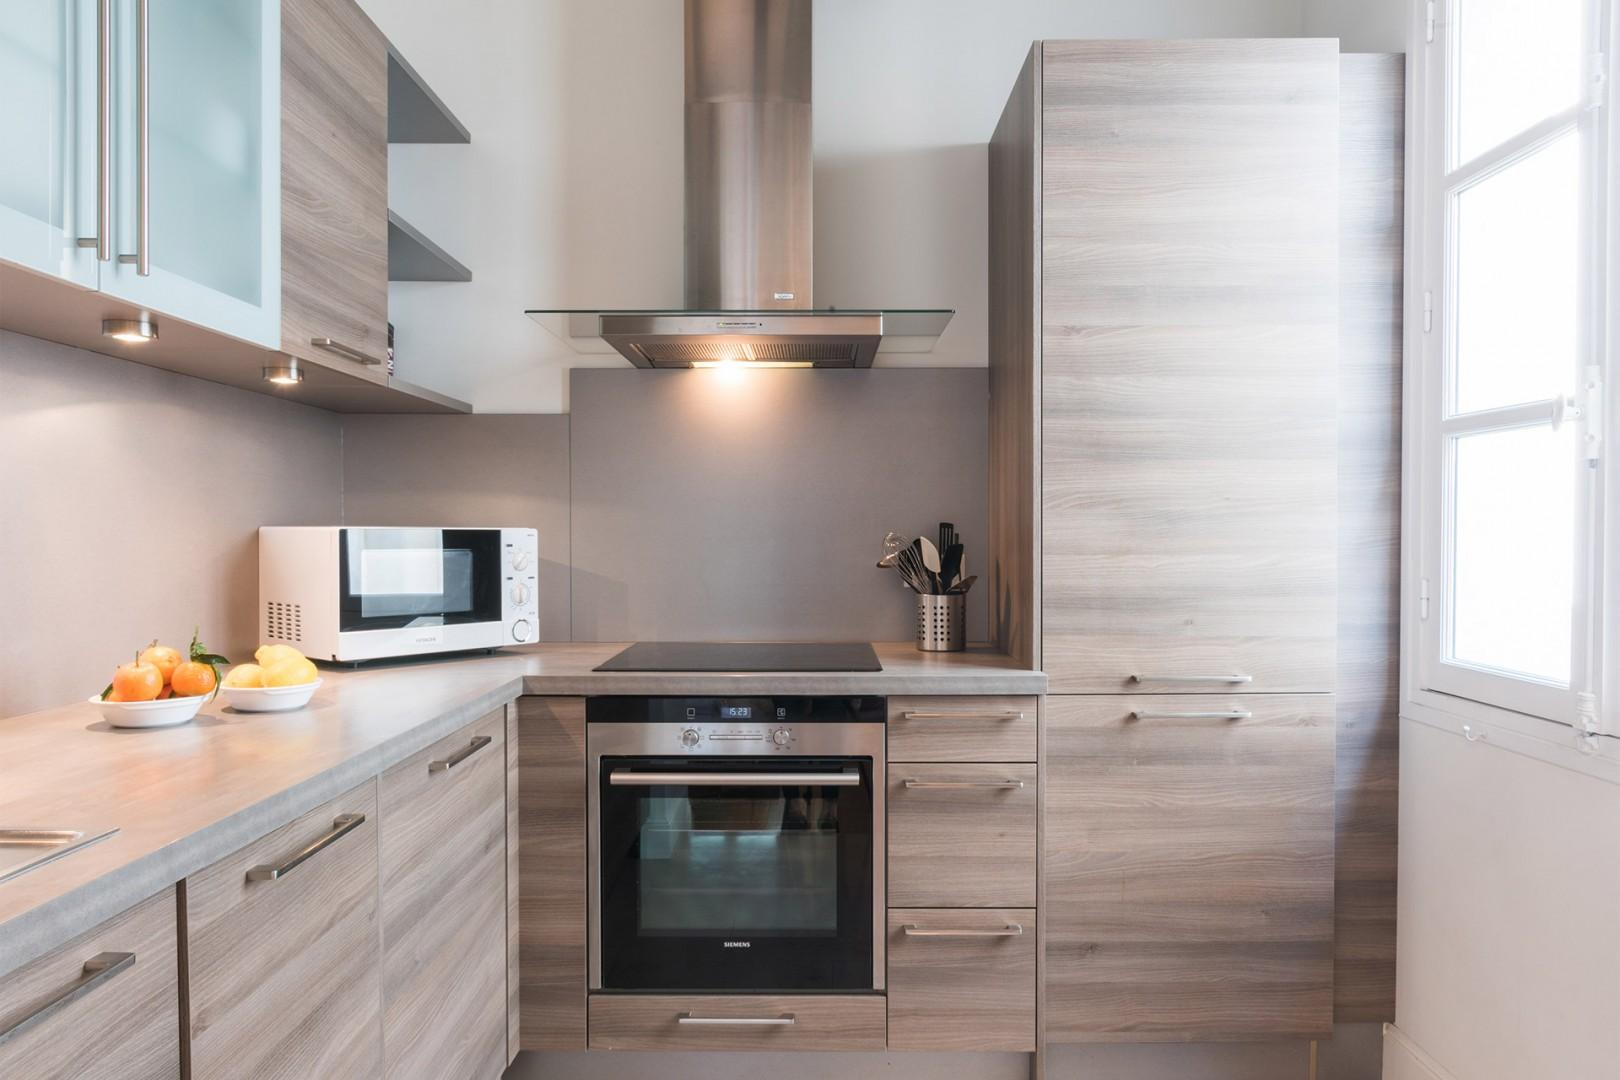 The modern kitchen equipped with everything you need to cook at home.